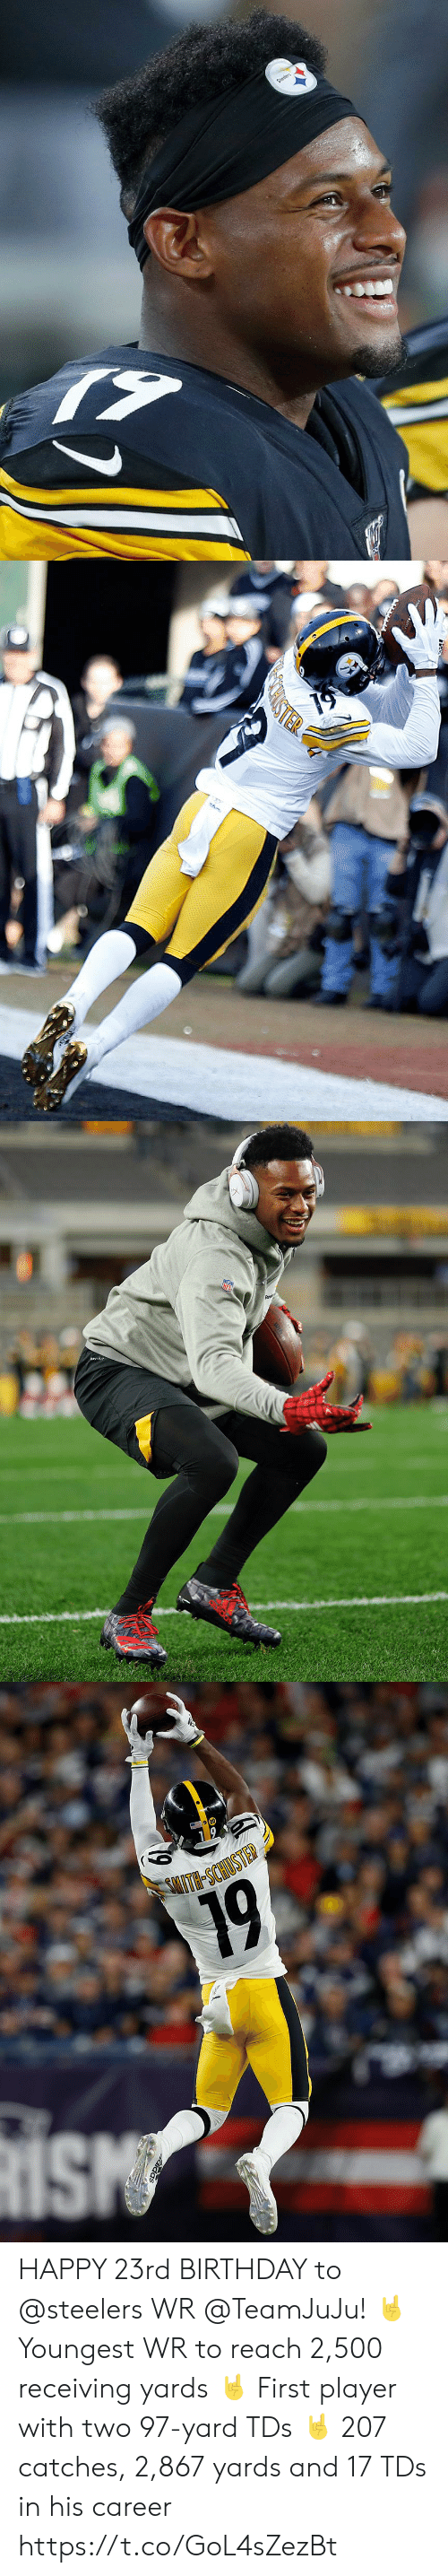 Steelers: Steelers   TER   DR-FIT   SITH-SCHIOSTED  19 HAPPY 23rd BIRTHDAY to @steelers WR @TeamJuJu! 🤘 Youngest WR to reach 2,500 receiving yards 🤘 First player with two 97-yard TDs 🤘 207 catches, 2,867 yards and 17 TDs in his career https://t.co/GoL4sZezBt